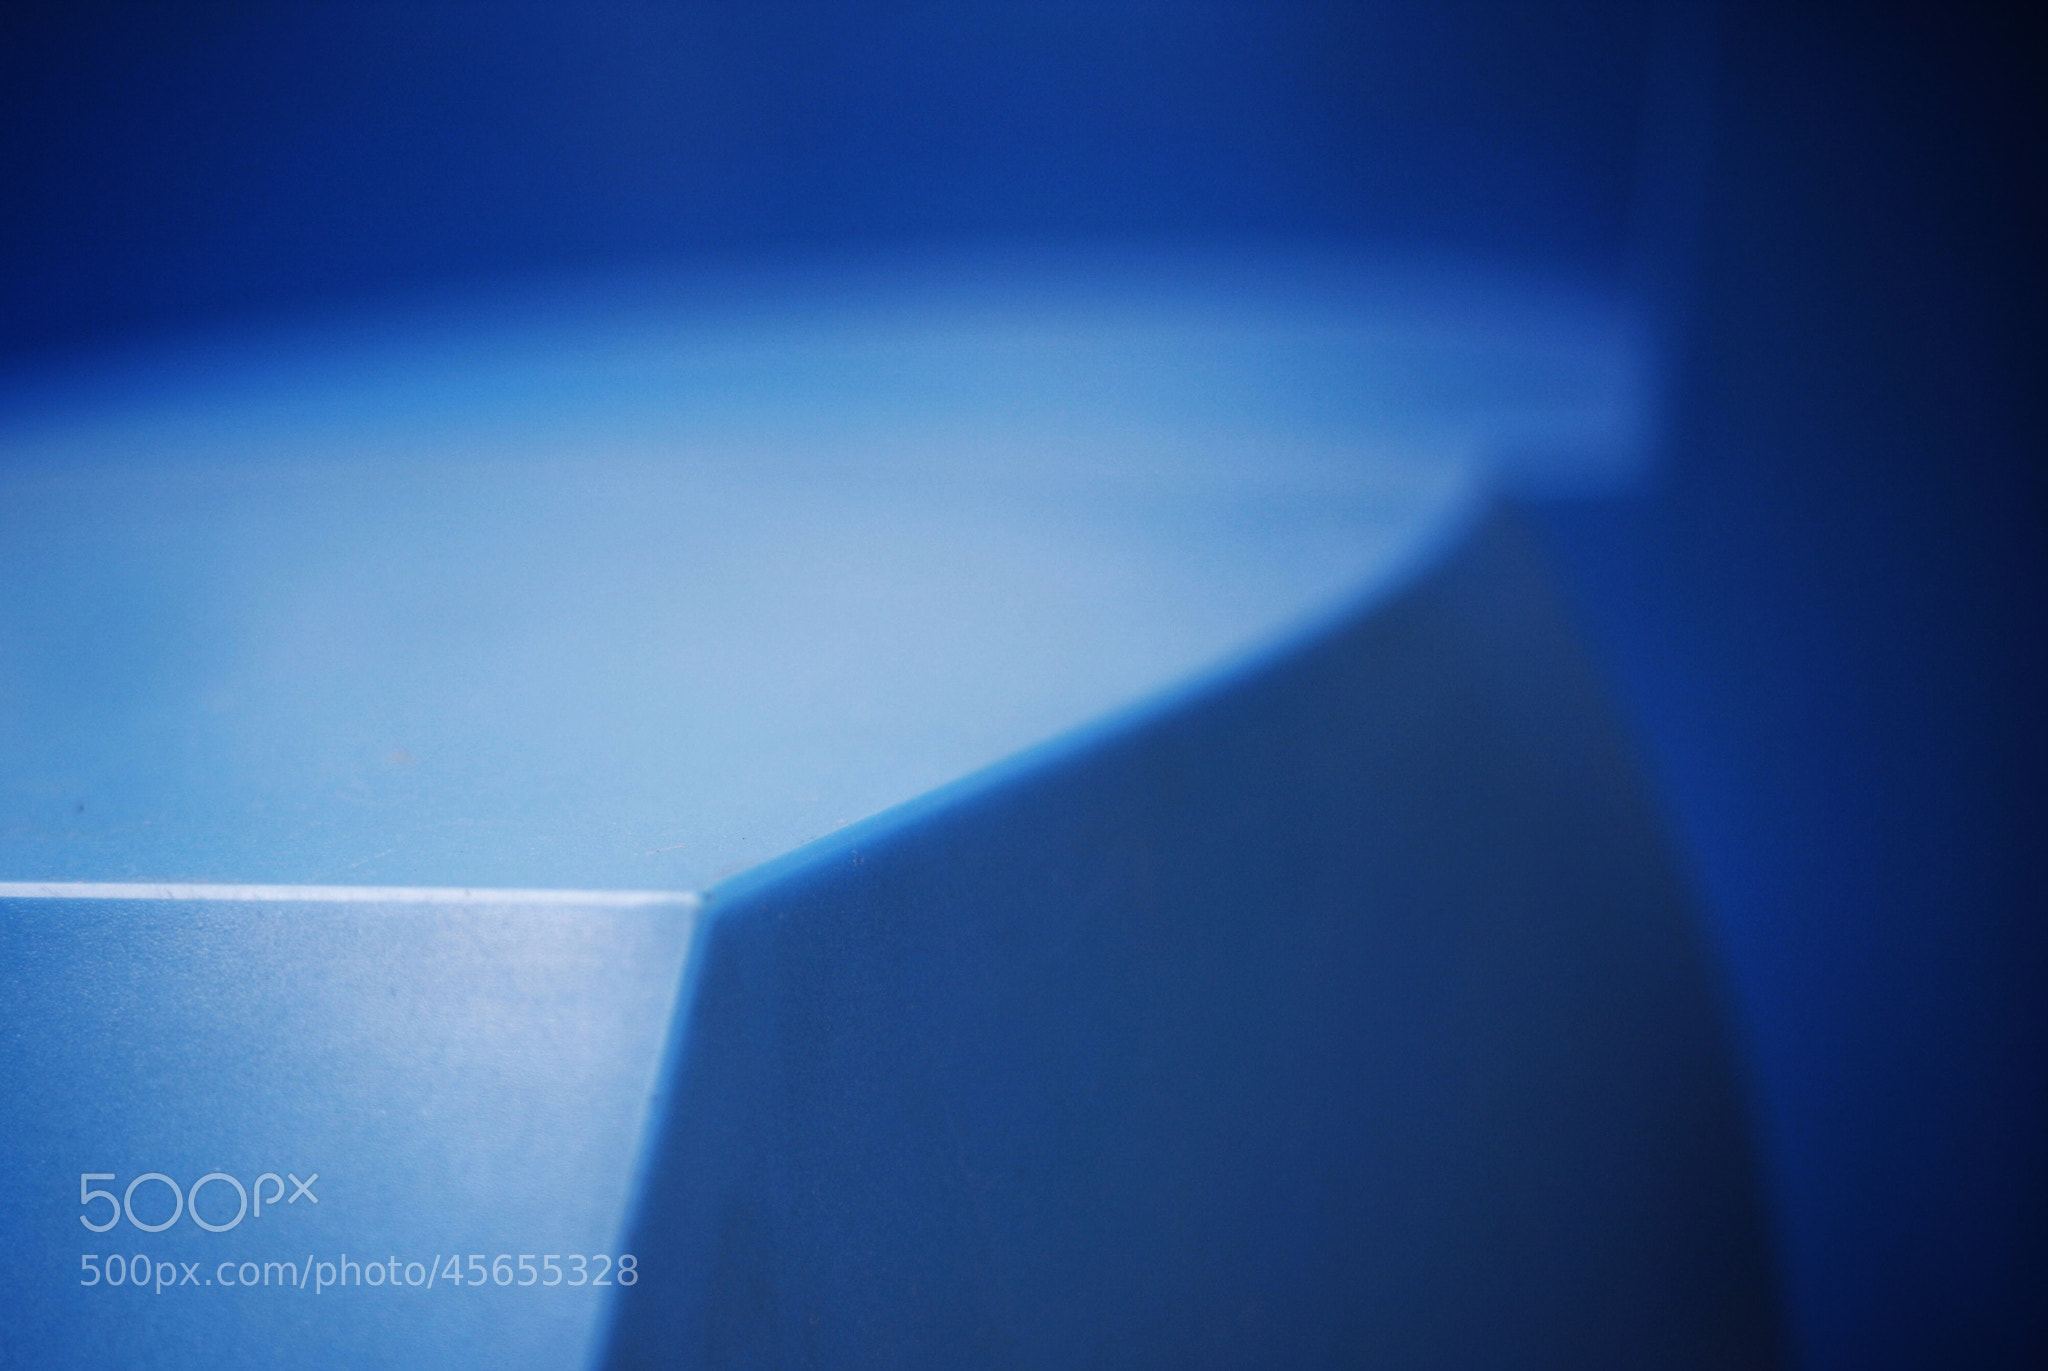 Photograph Feelin Blue by Paul Bartell on 500px